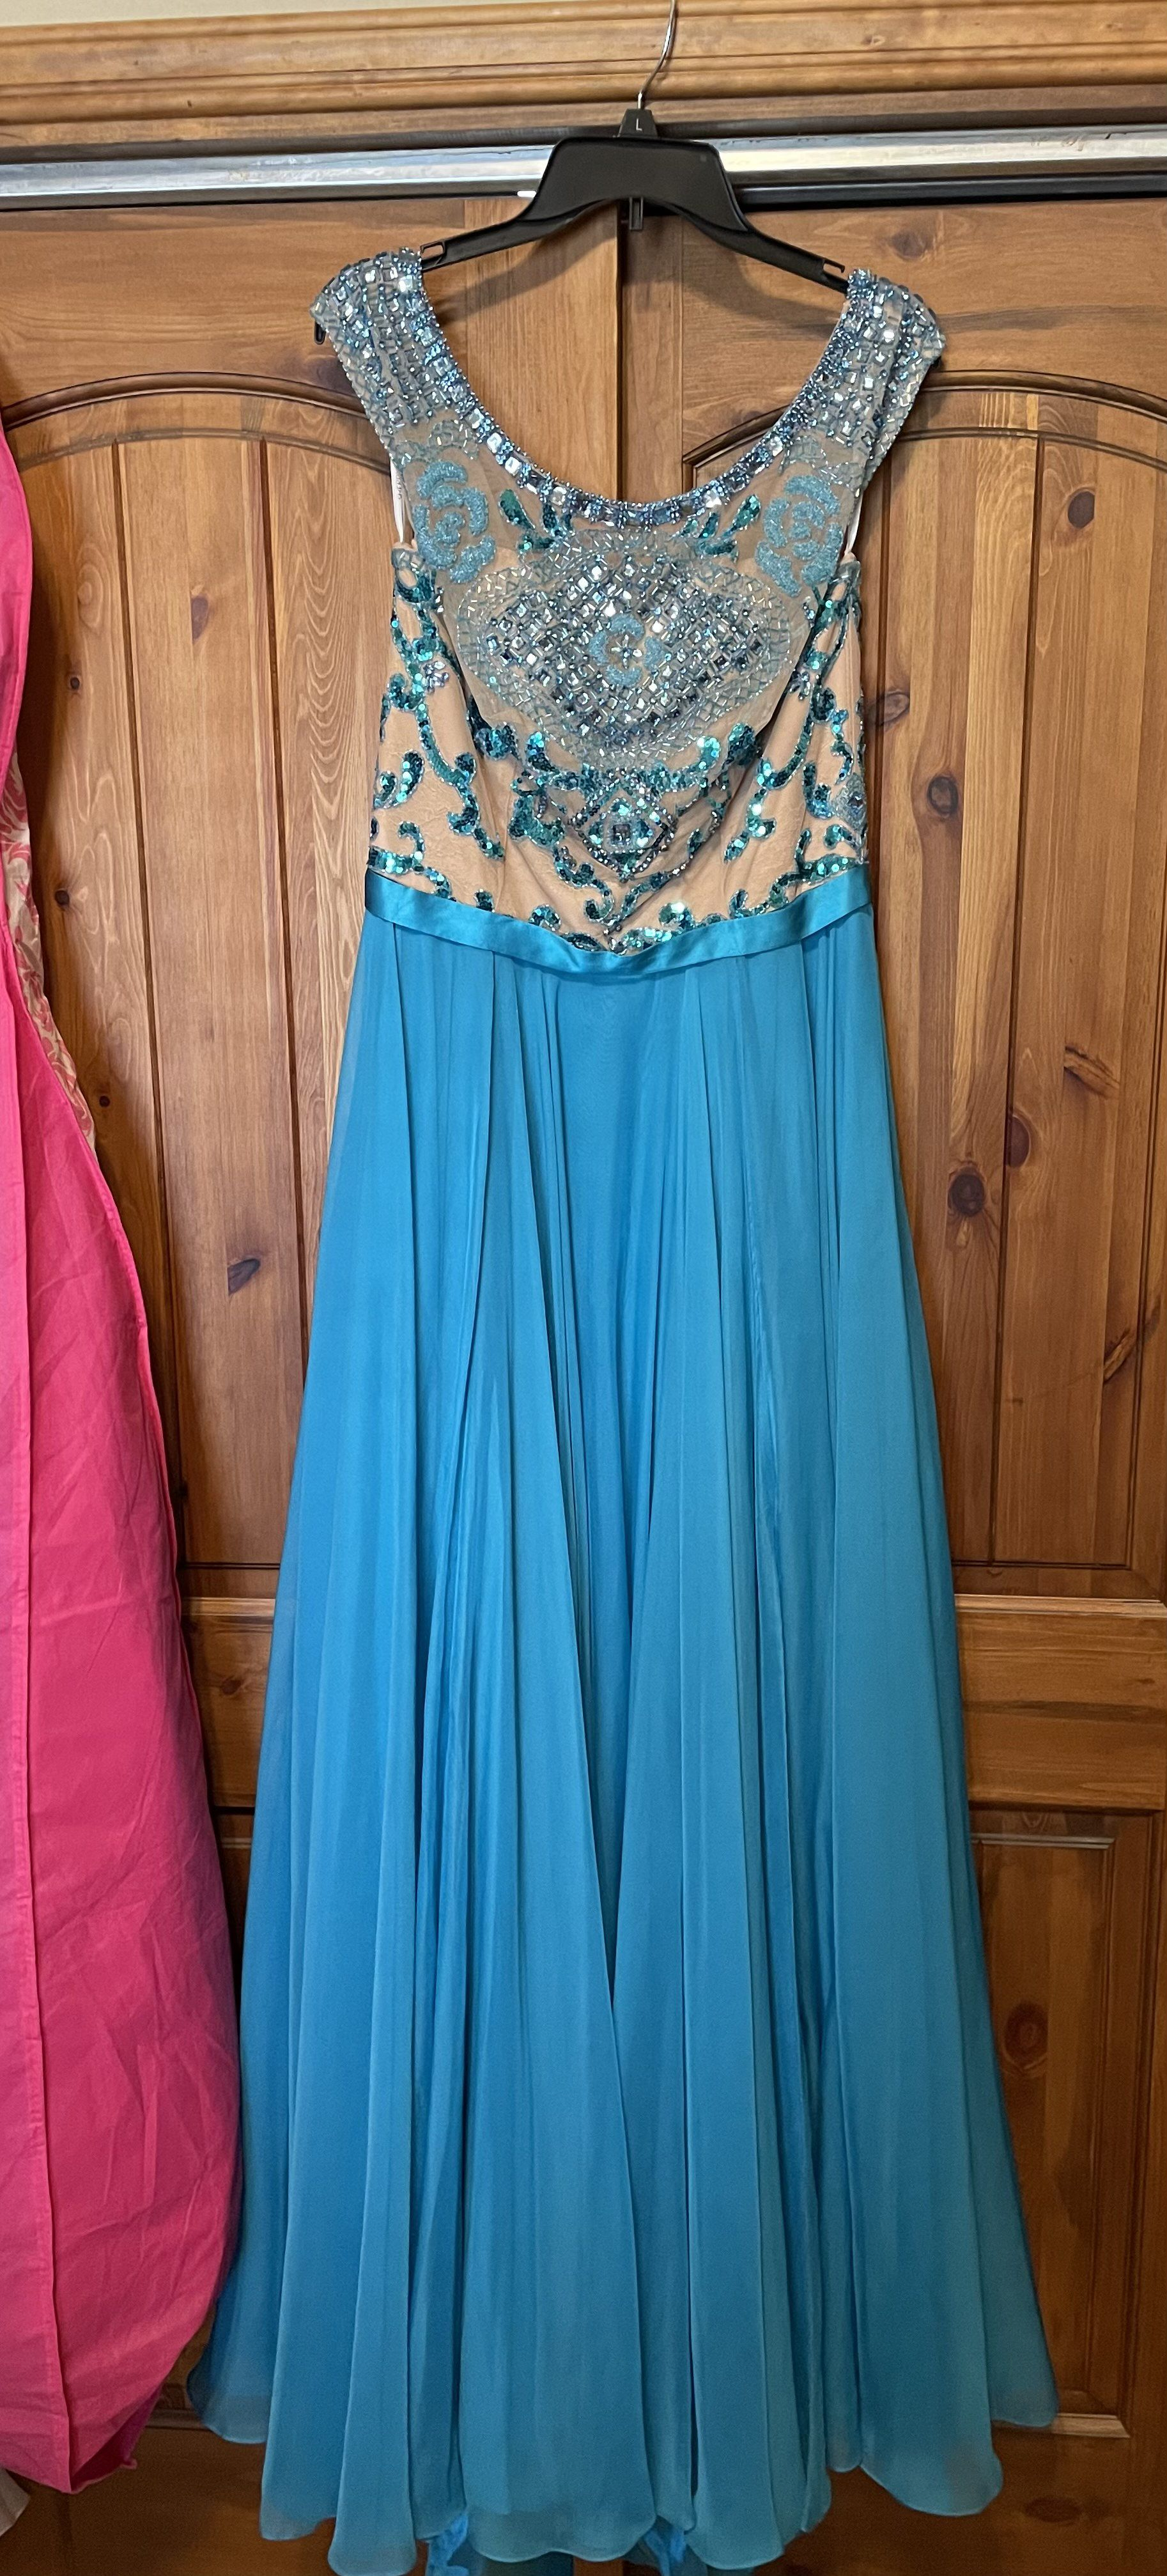 Sherri Hill Blue Size 14 Pageant Green Tall Height A-line Dress on Queenly